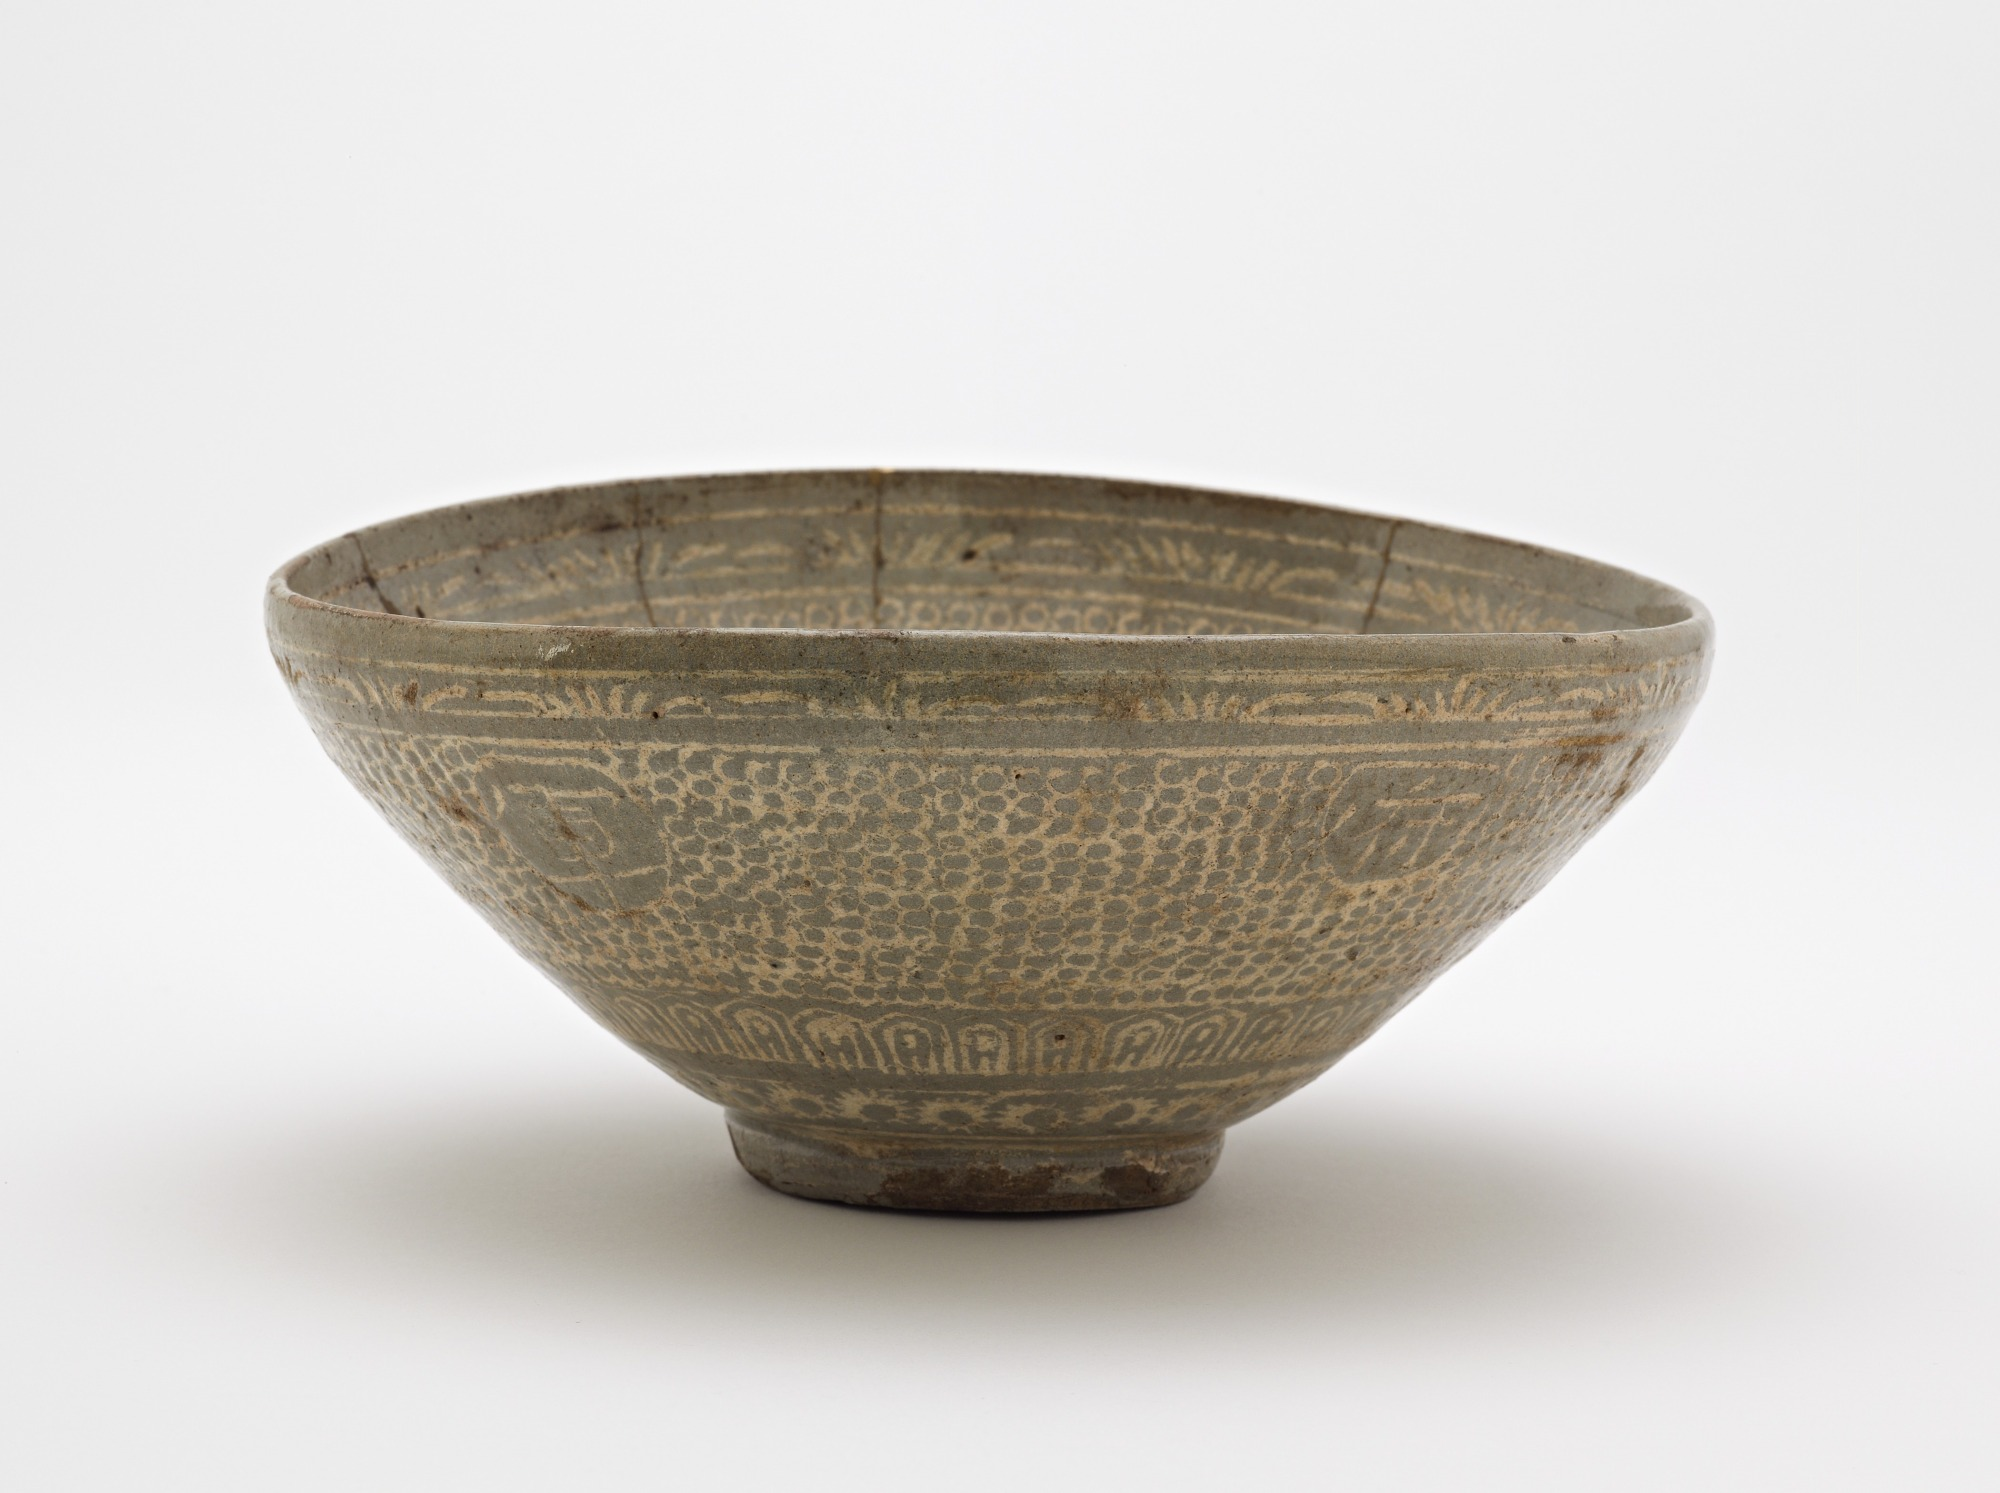 Bowl with inlaid inscription, profile